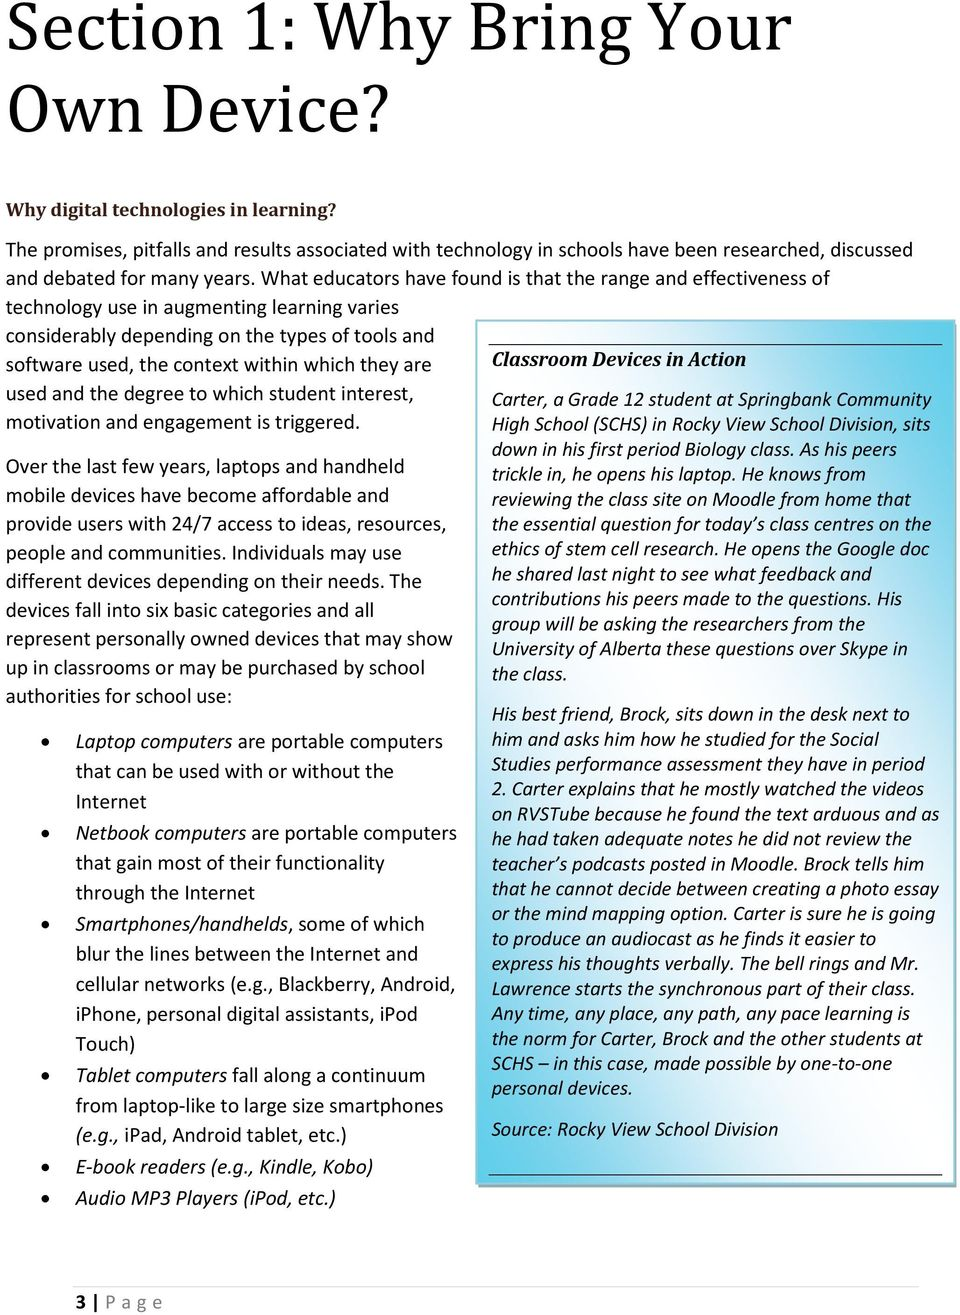 What educators have found is that the range and effectiveness of technology use in augmenting learning varies considerably depending on the types of tools and software used, the context within which